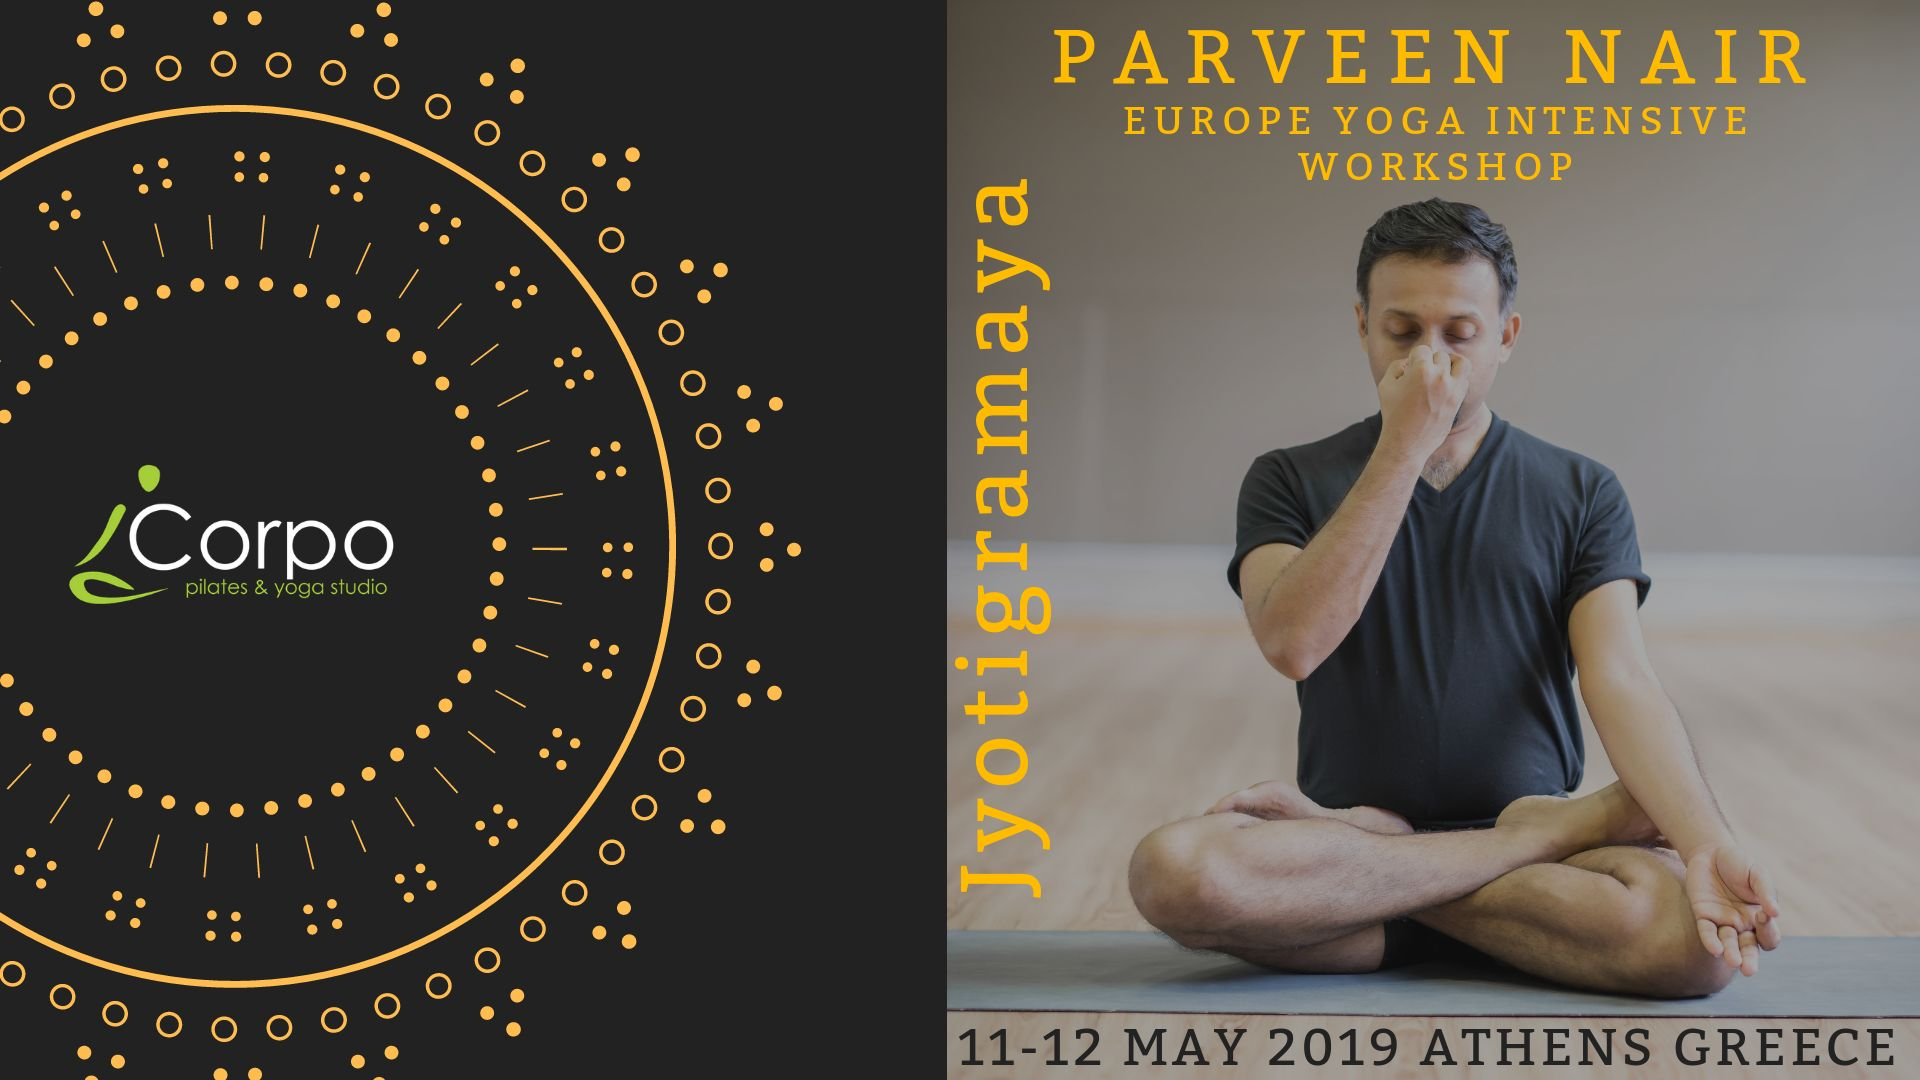 Yoga Intensive Workshop with Parveen Nair 11th & 12th of May